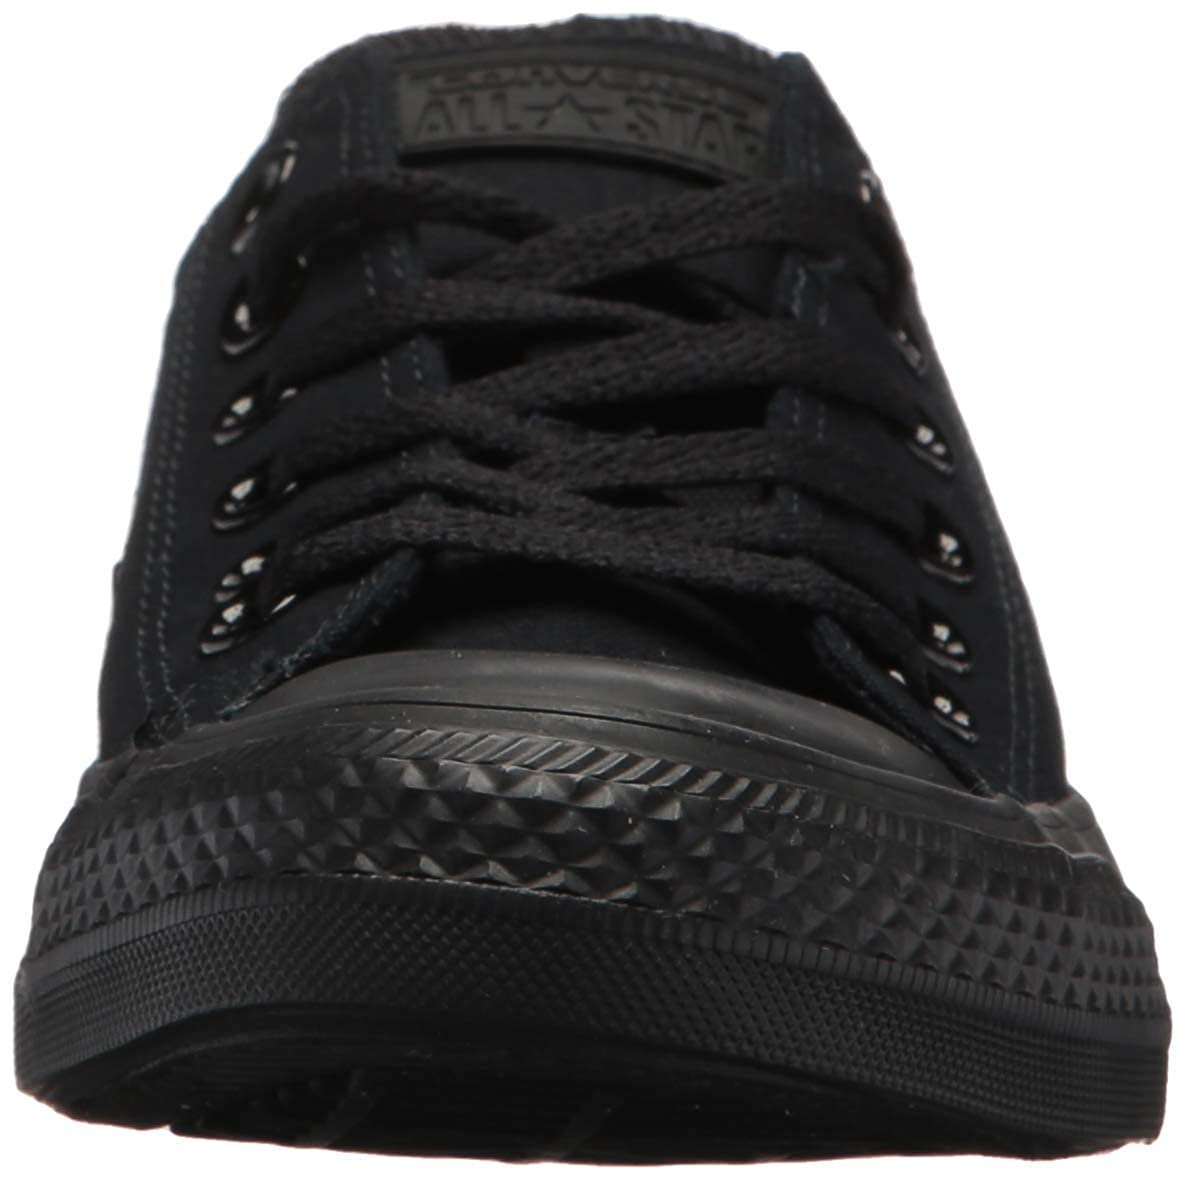 eb9b24cfaf6f Converse Unisex Adults  Chuck Taylor All Star Women s Canvas Trainers   Amazon.co.uk  Shoes   Bags